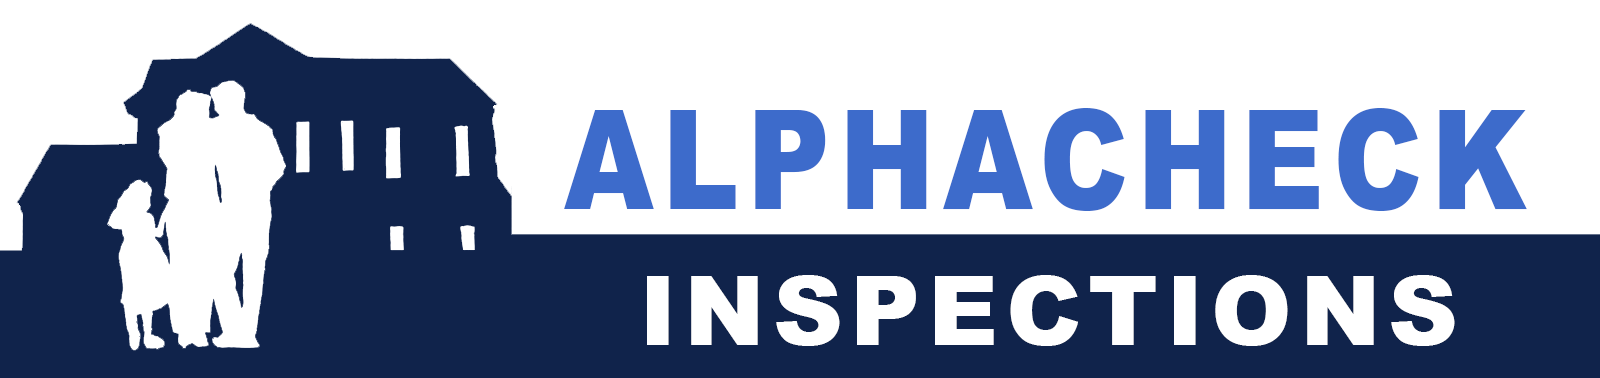 Alphacheck Inspections: Home Inspections, Construction Consulting, Environmental Testing